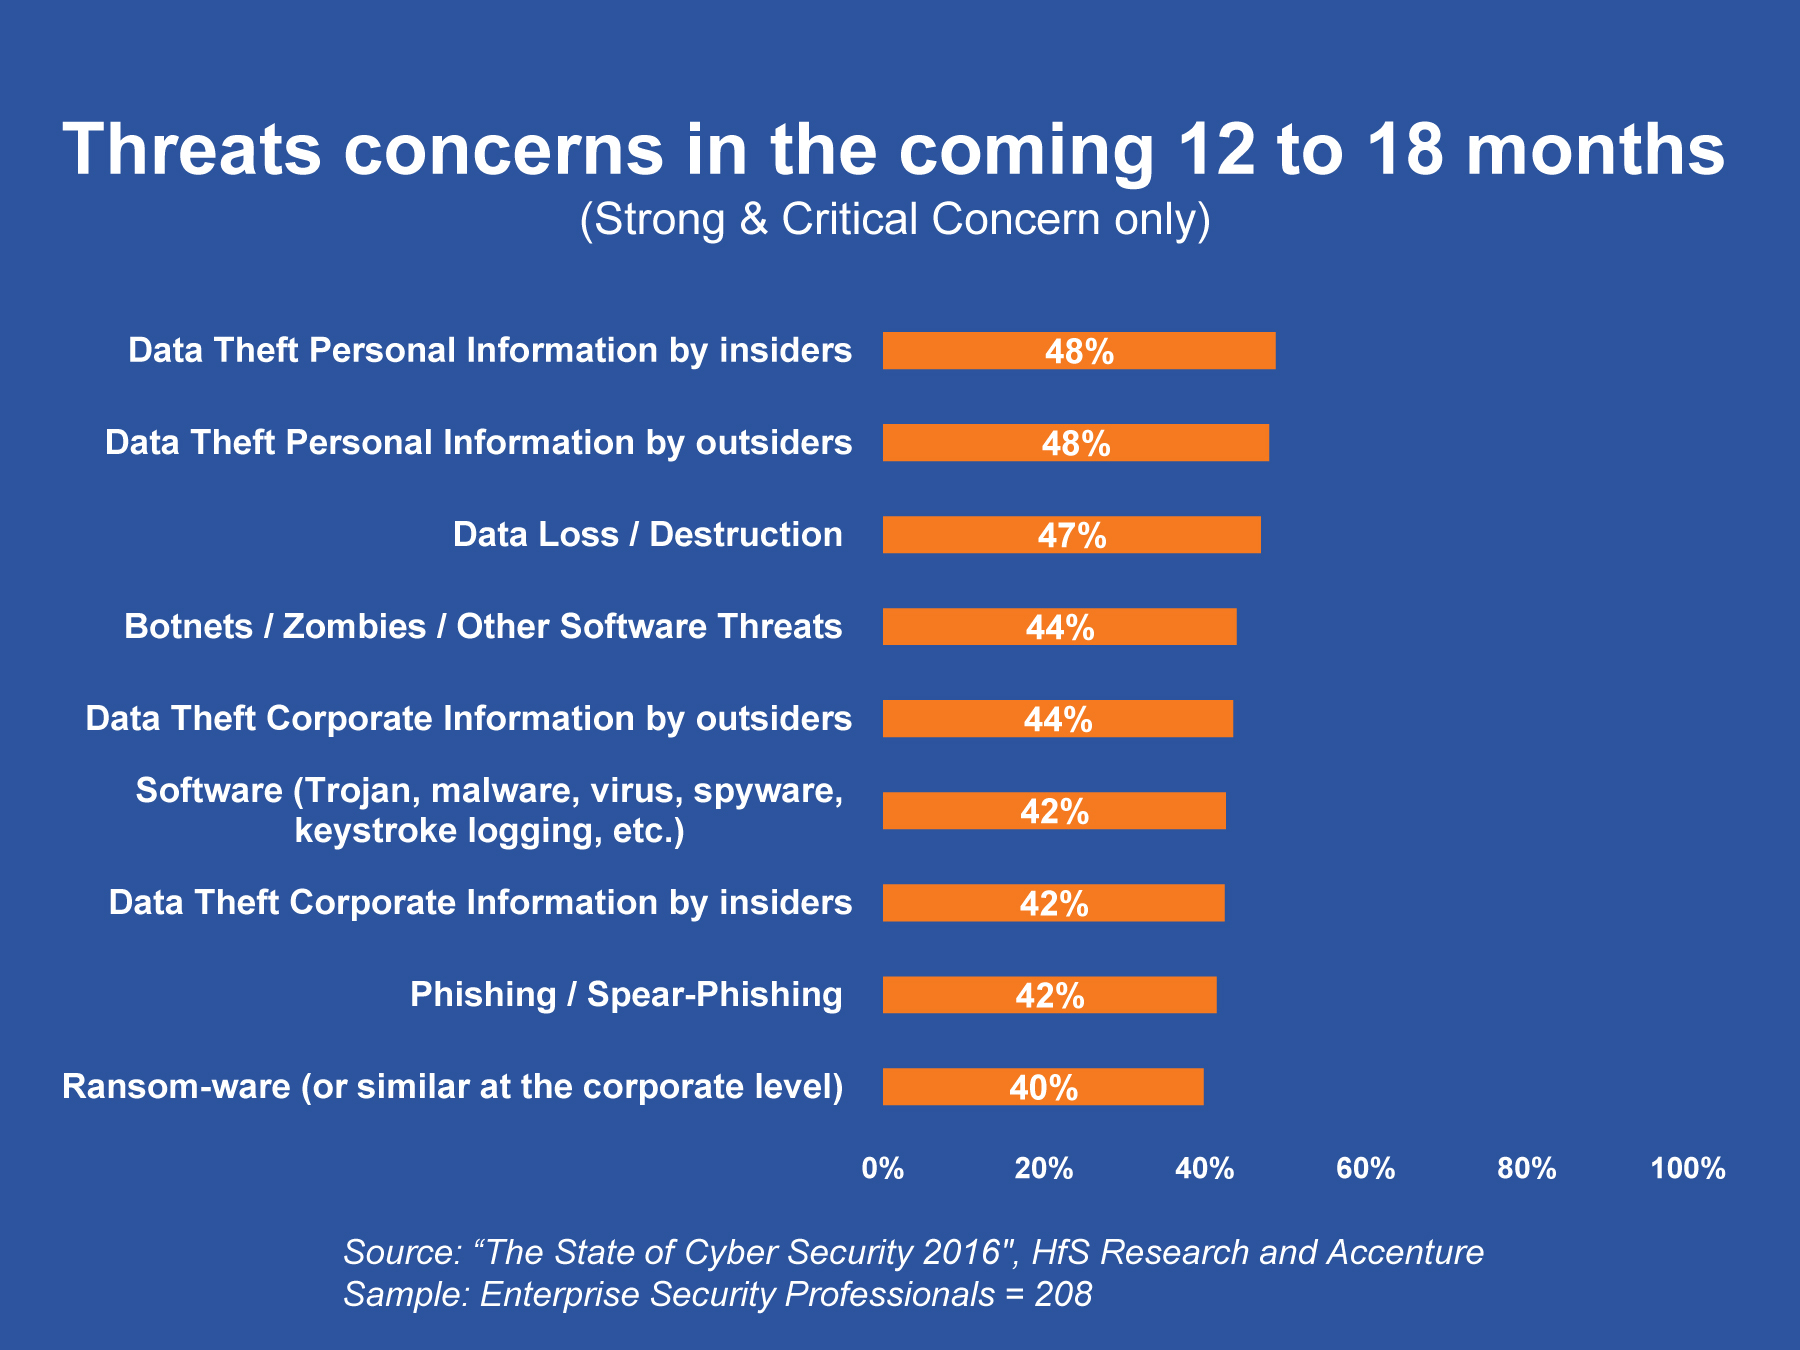 threats concerns in the coming 12 to 18 months